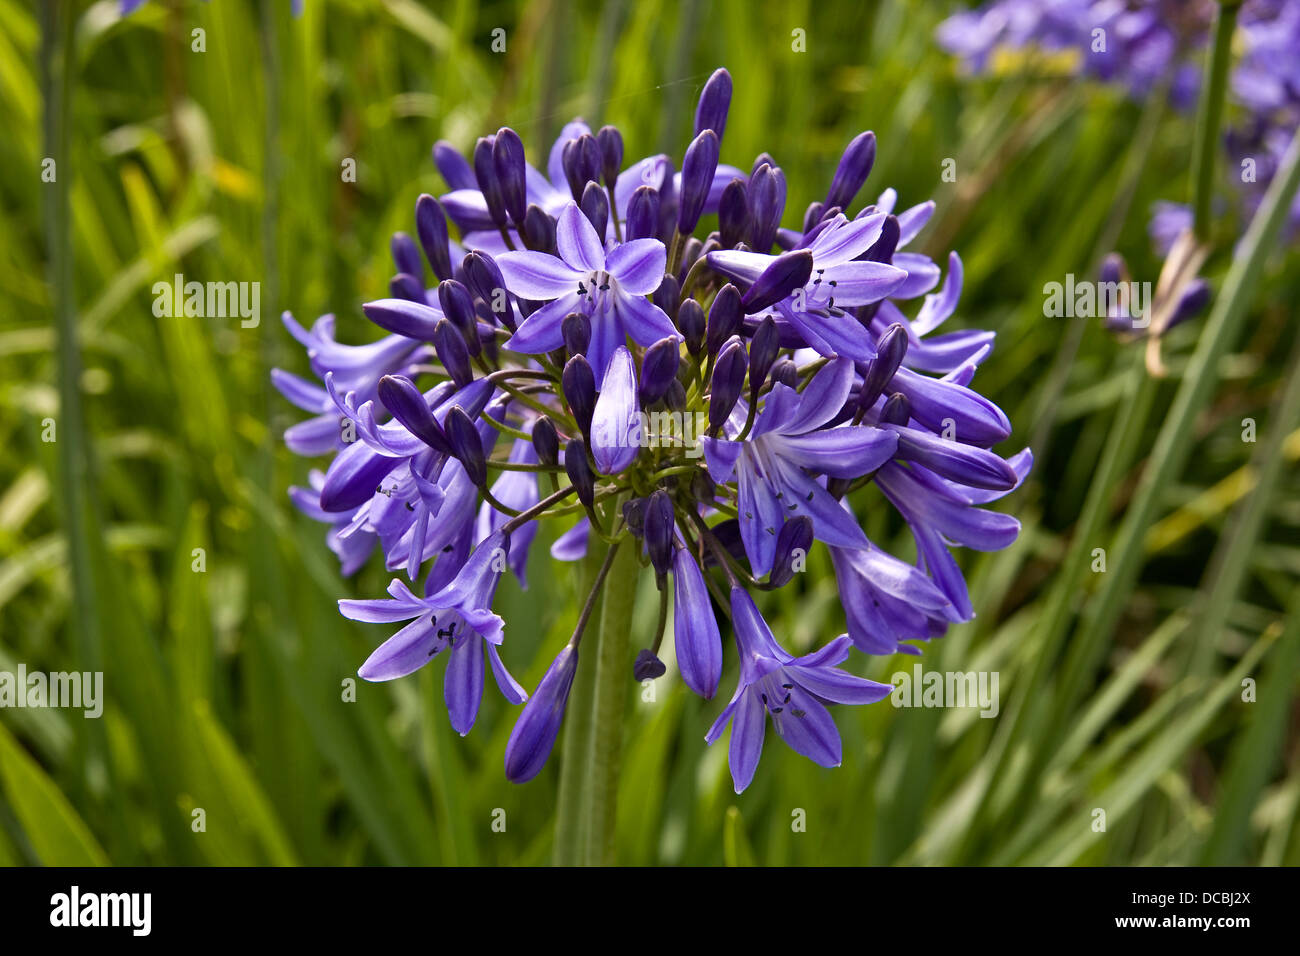 Monocots Alliaceae Narcissus Cyclameneus of the Daffodil family in full bloom inside the Dundee Botanic Gardens, - Stock Image